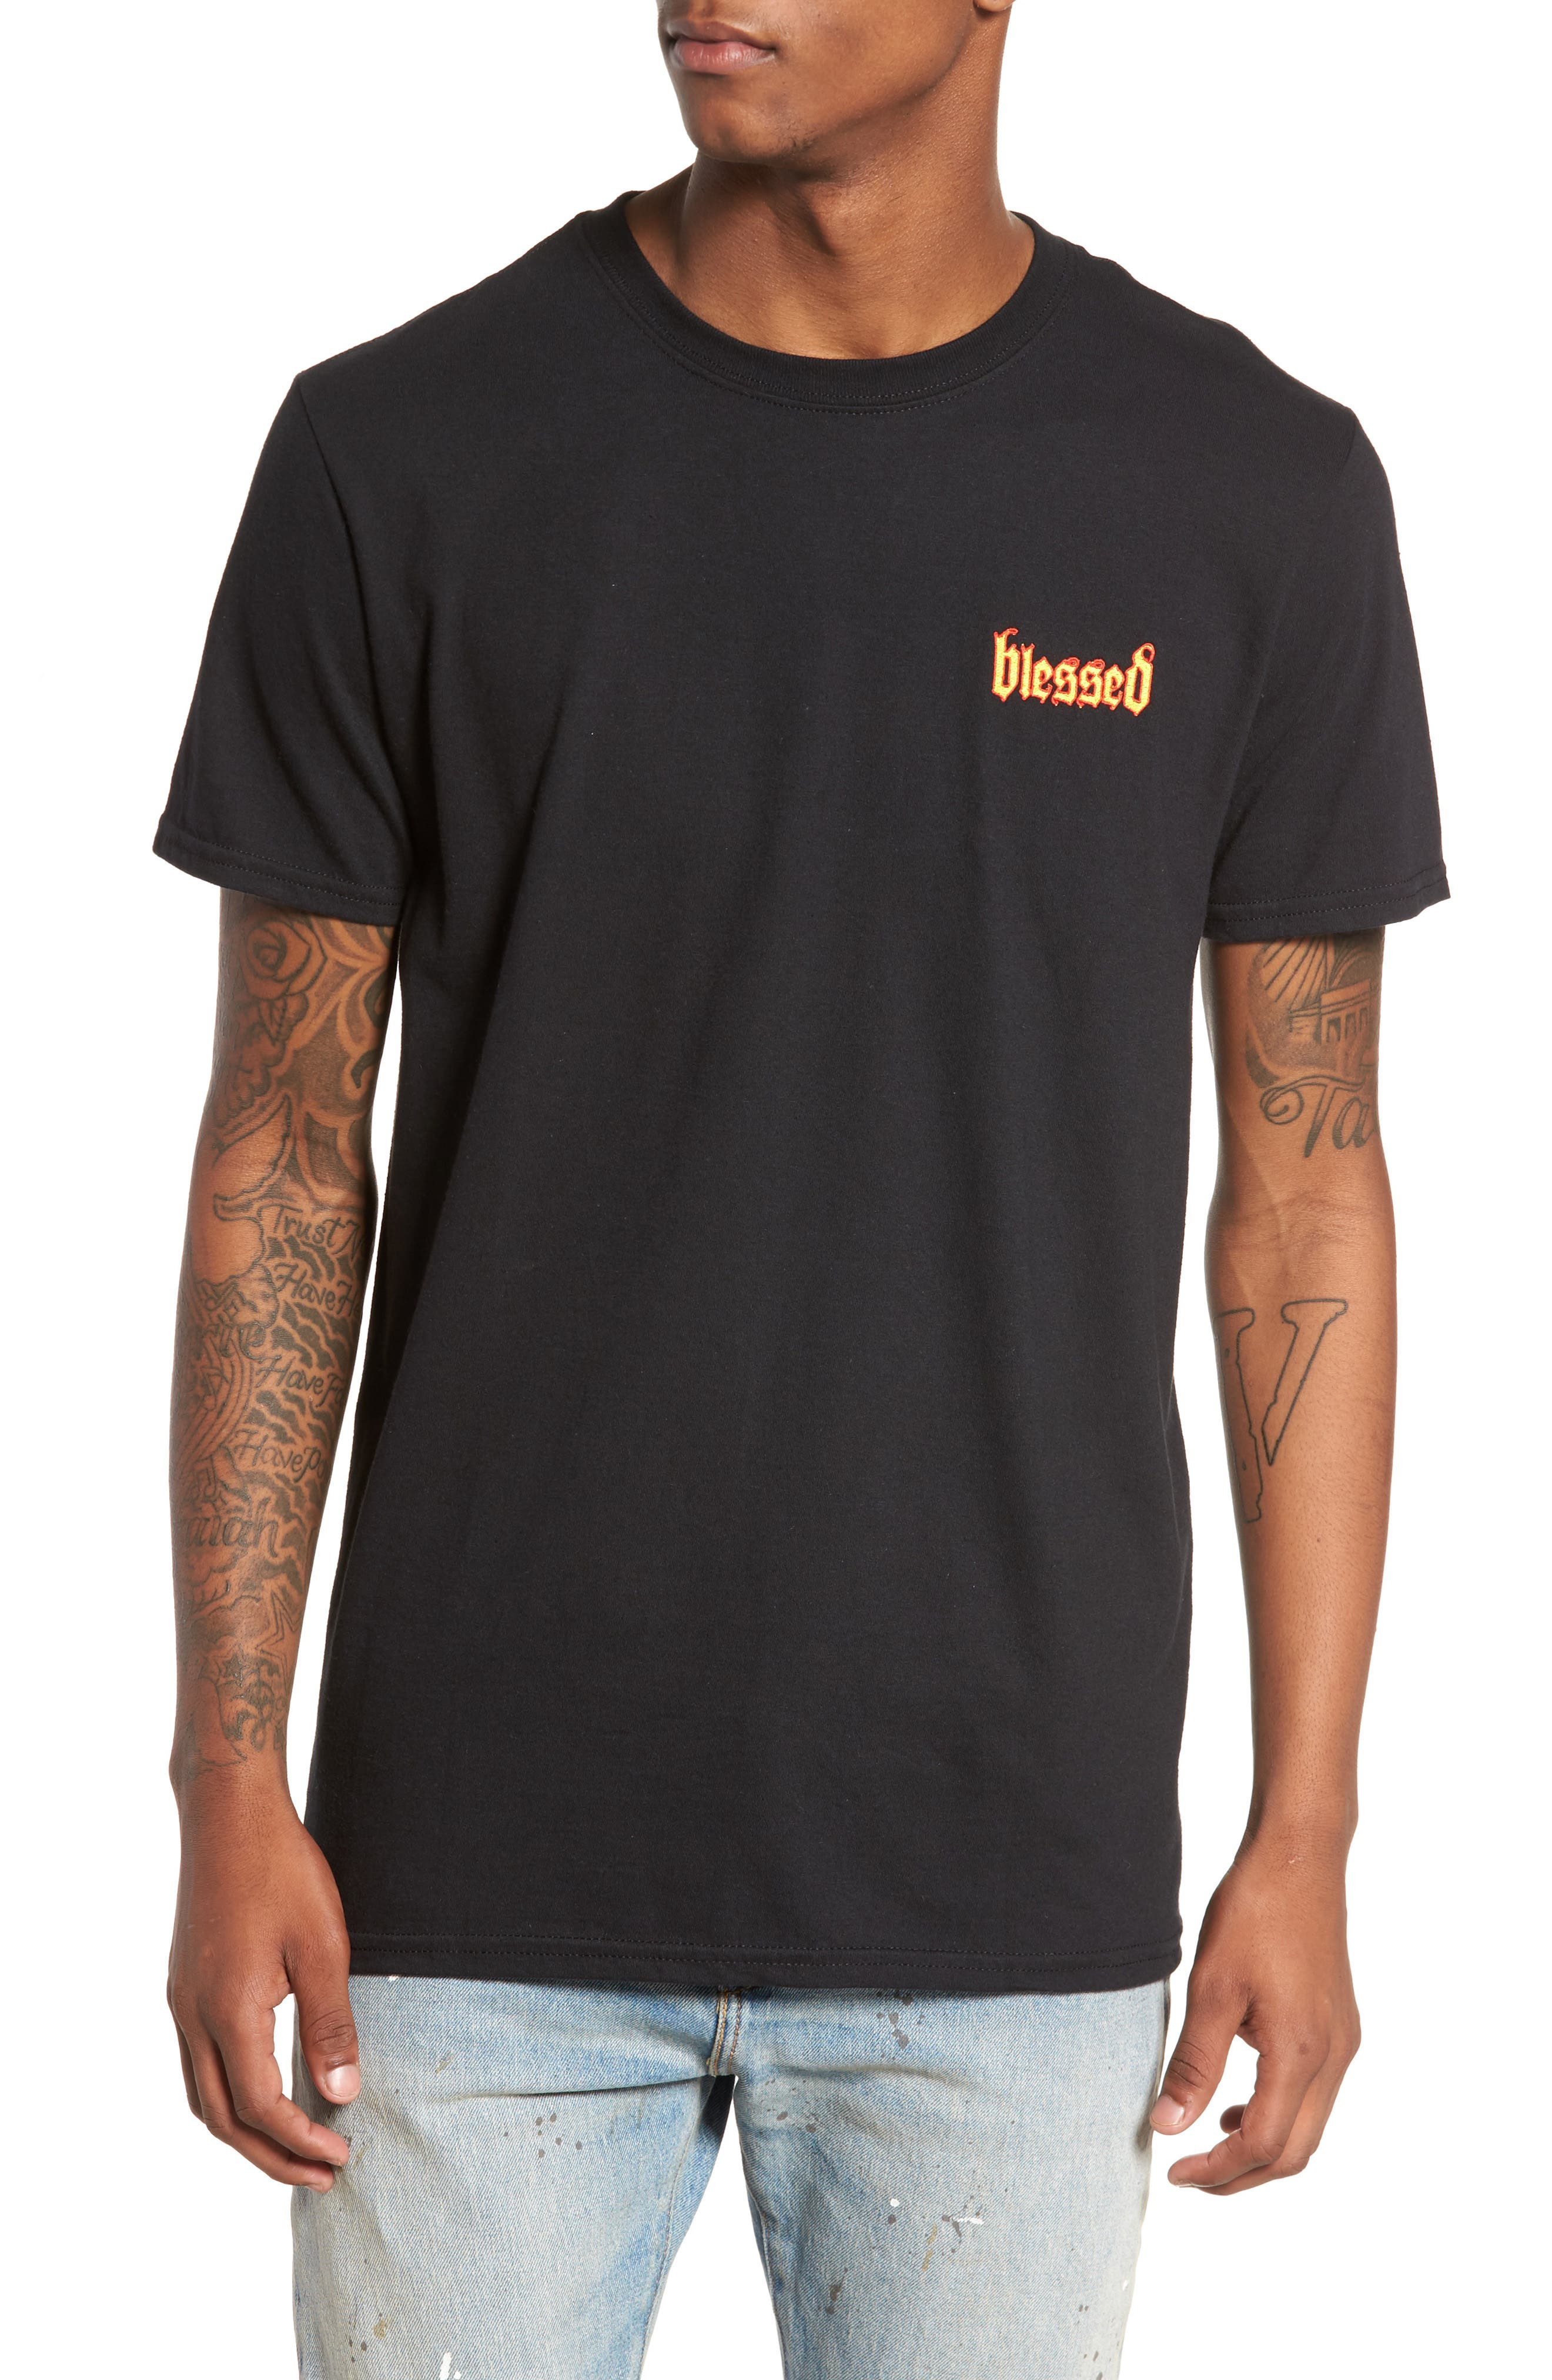 Blessed T-Shirt,                         Main,                         color,